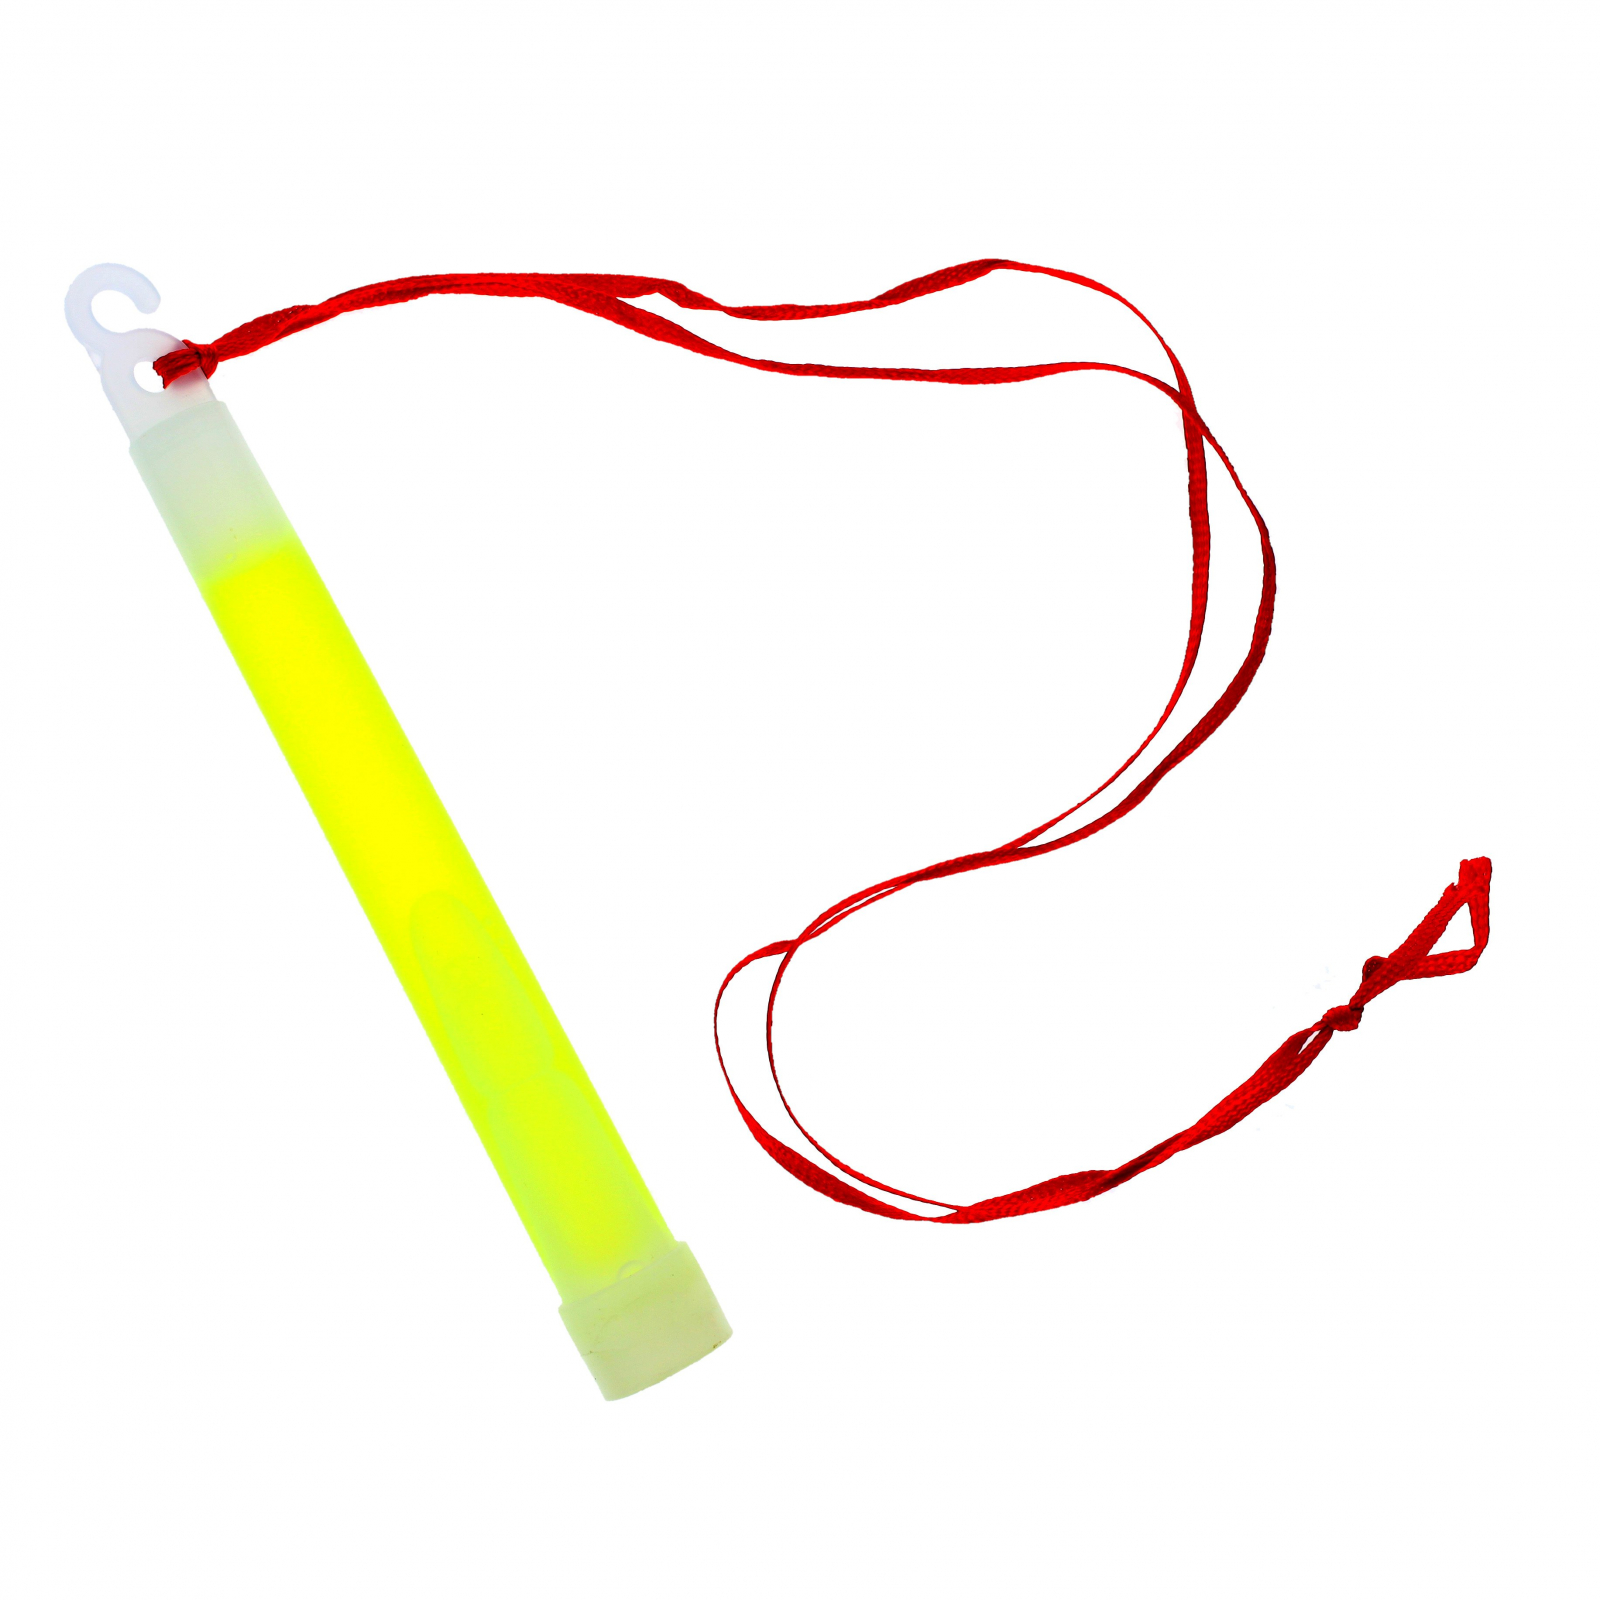 ASR Outdoor Emergency Glow Stick BOB High Visibility Night Vision, 6 inch Green